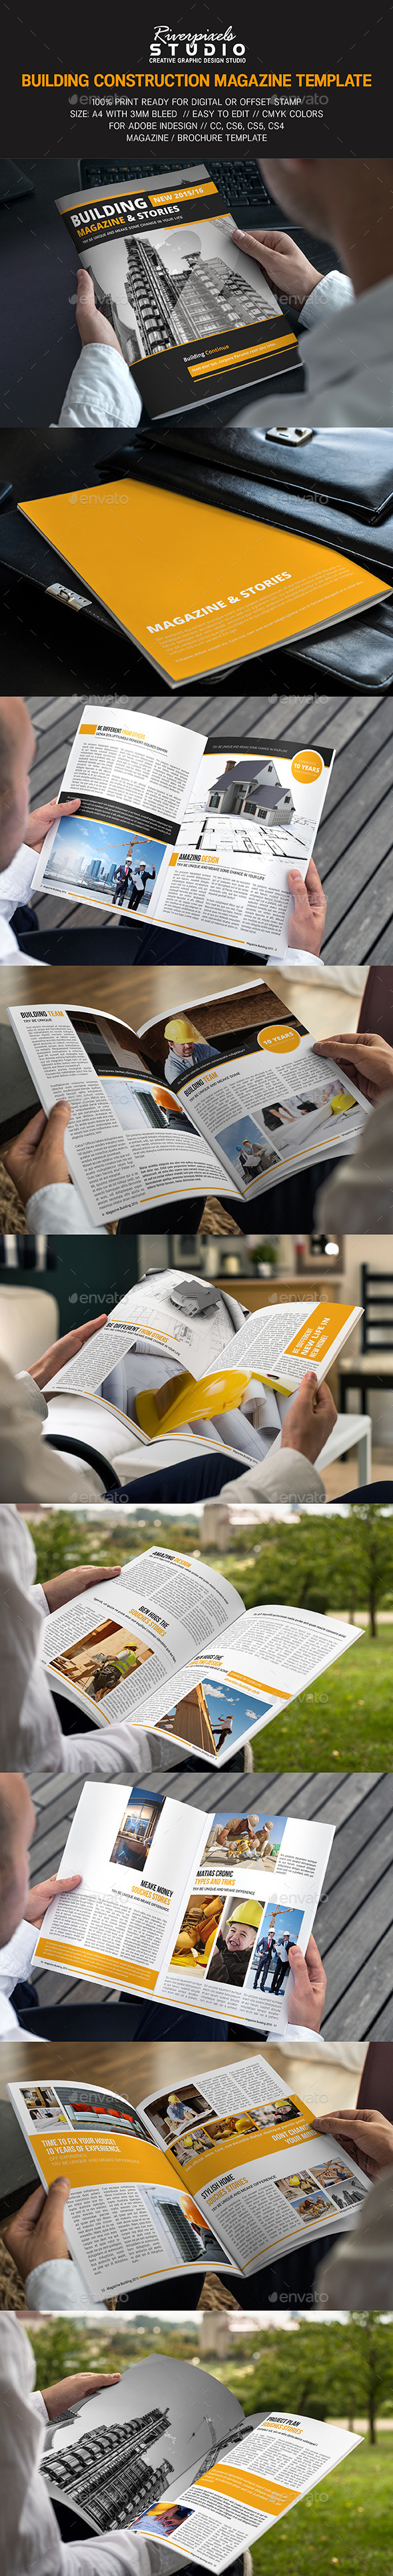 Building Construction Magazine - Magazines Print Templates